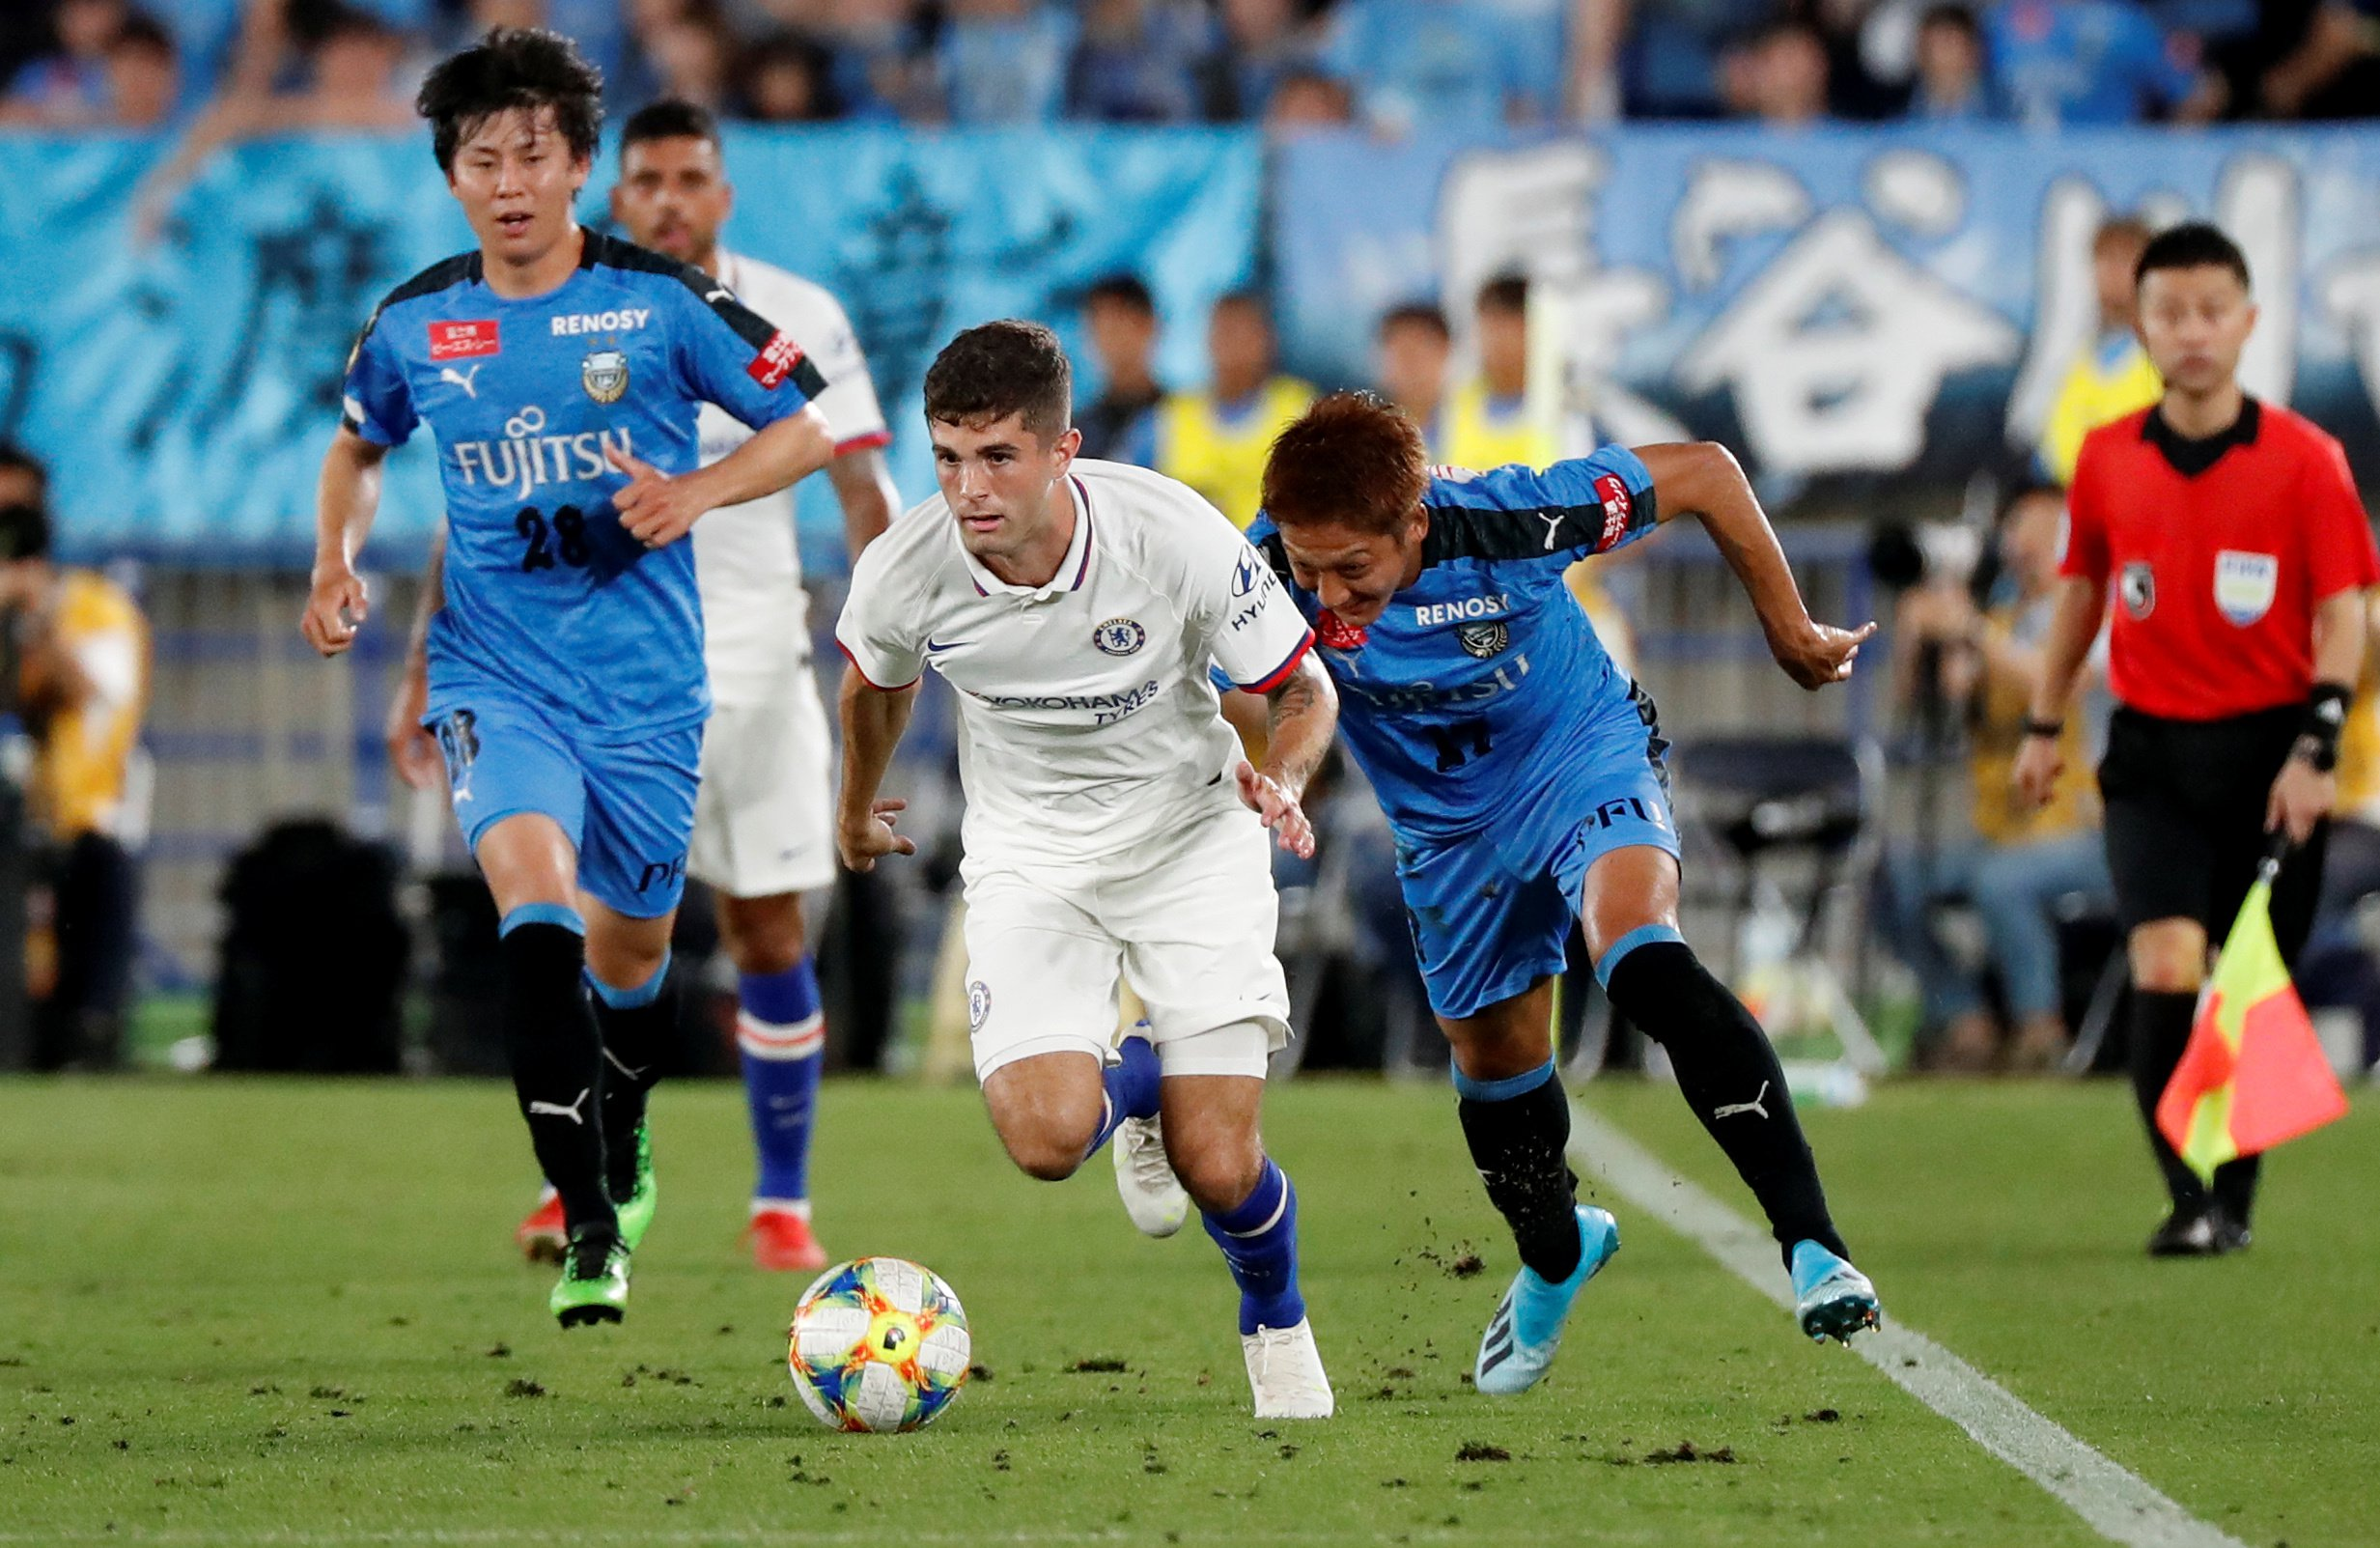 Christian Pulisic done his Chelsea entrance as a second half surrogate opposite Kawasaki Frontale